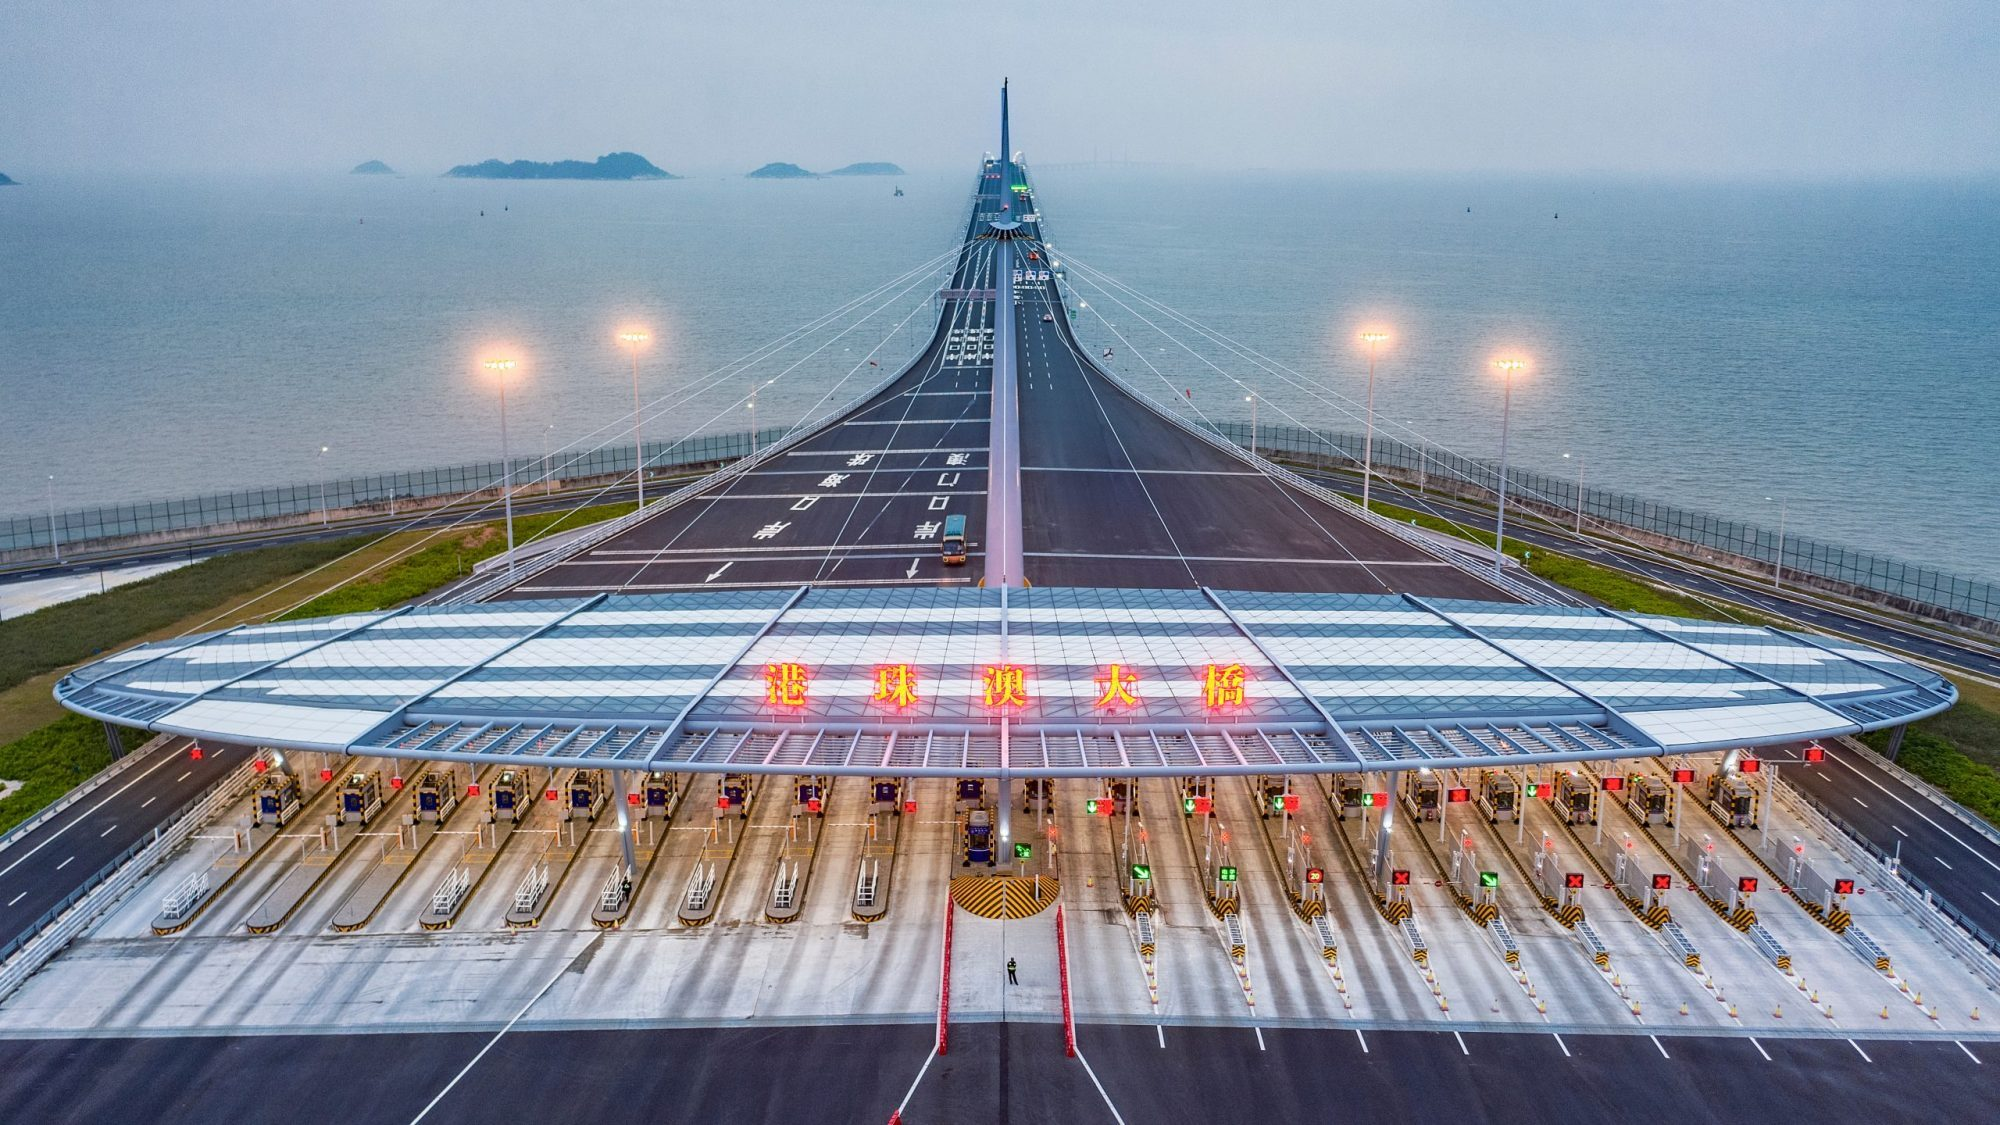 Hong Kong Zhuhai Macau Bridge